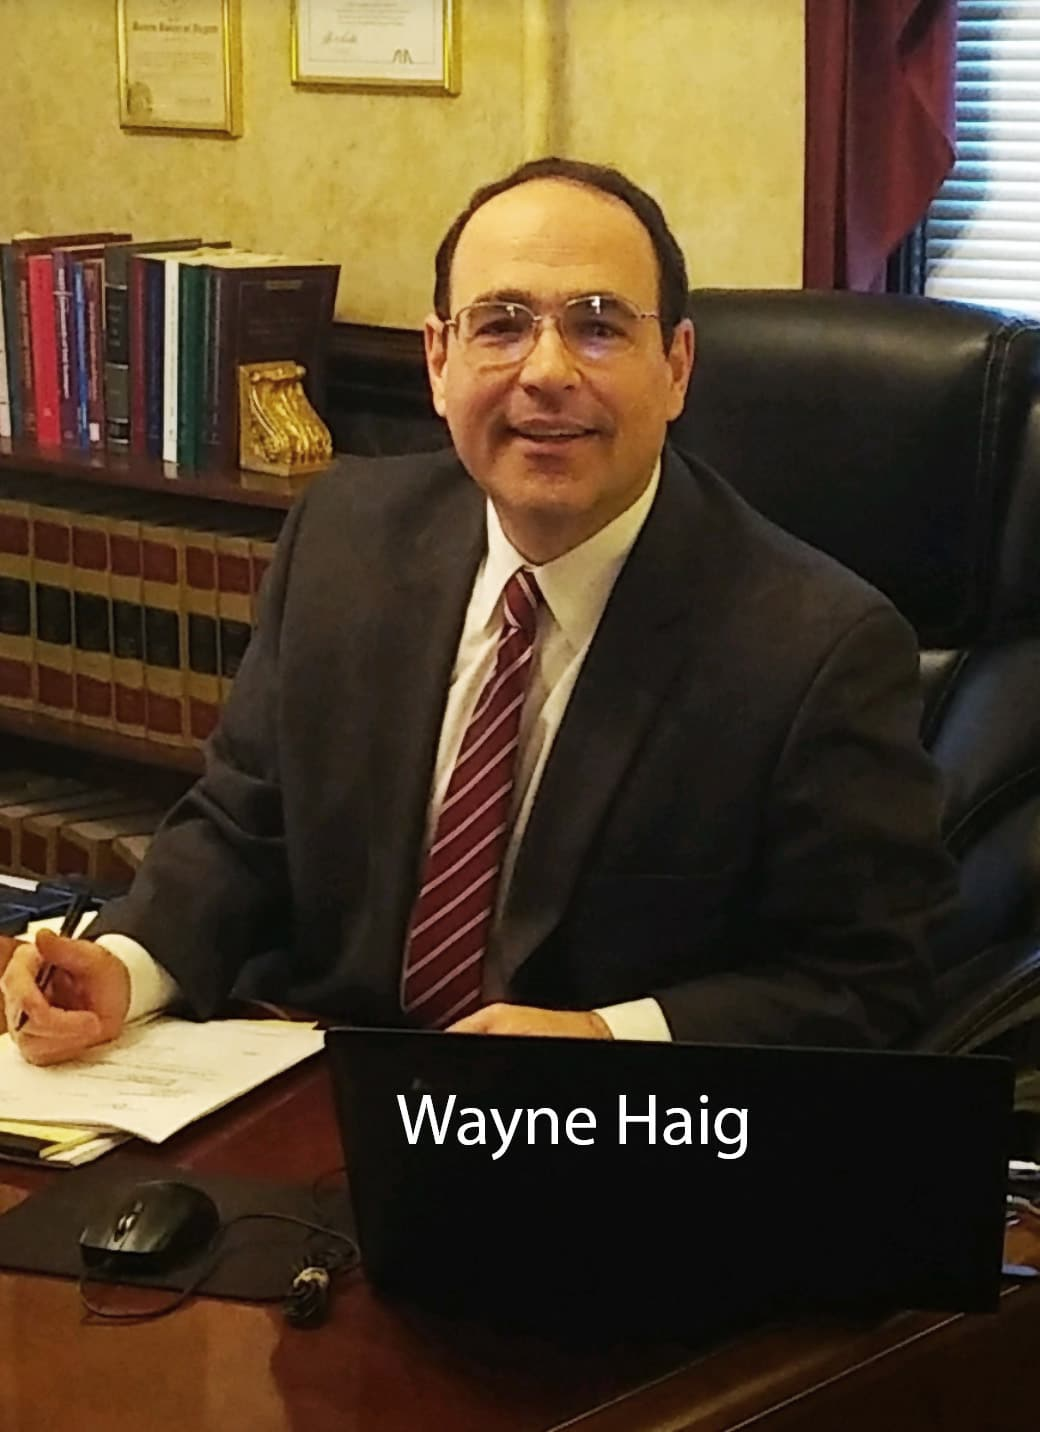 Workers Compensation Attorney Wayne Haig